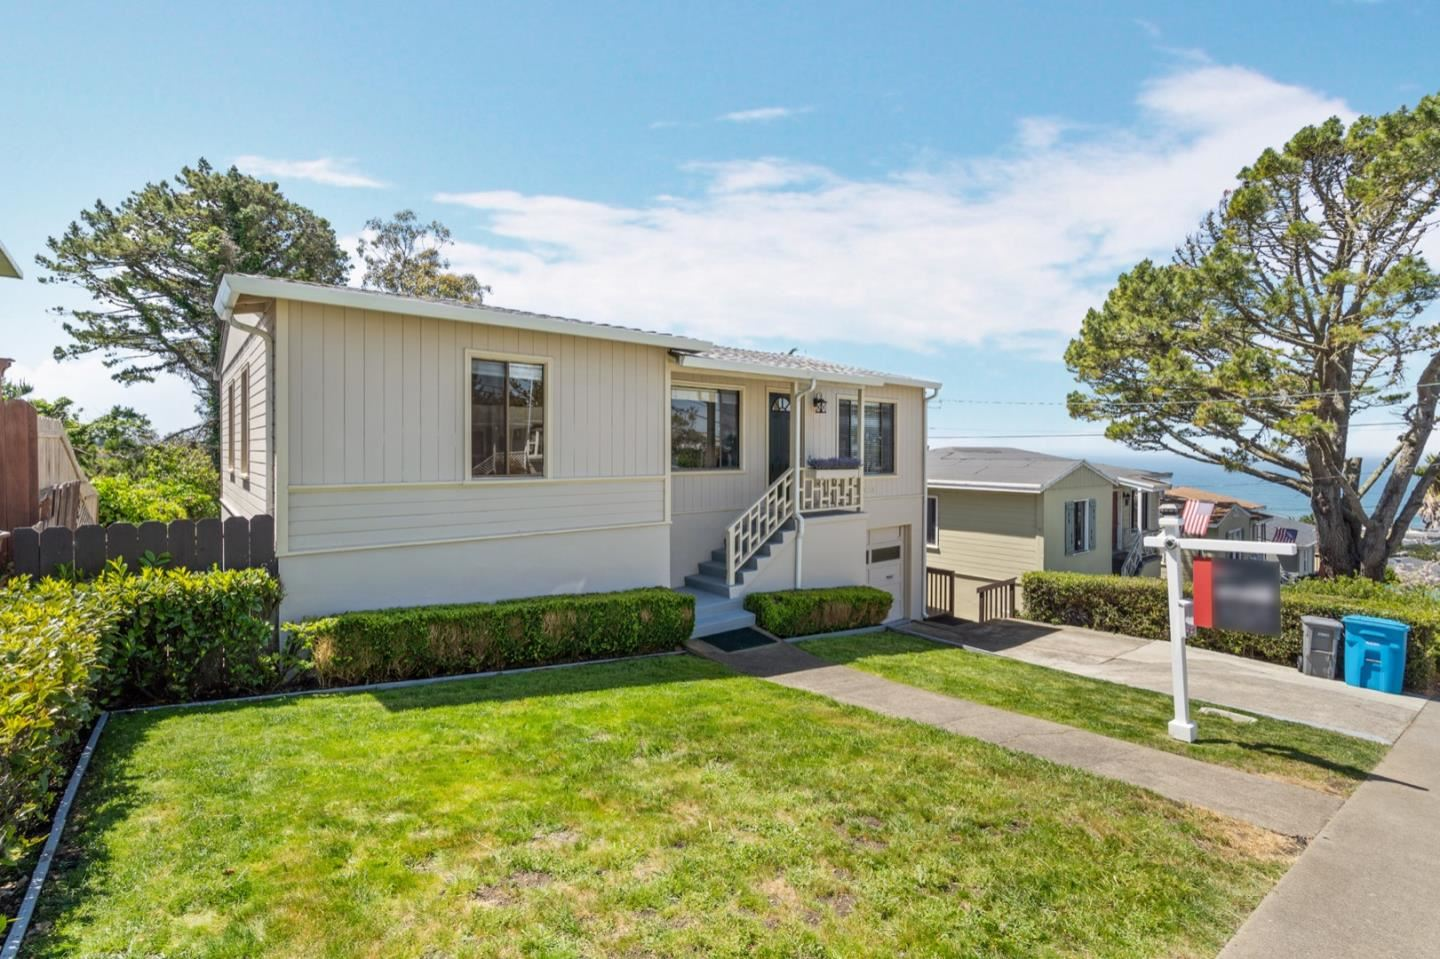 Photo for 424 Manor DR, PACIFICA, CA 94044 (MLS # ML81787912)